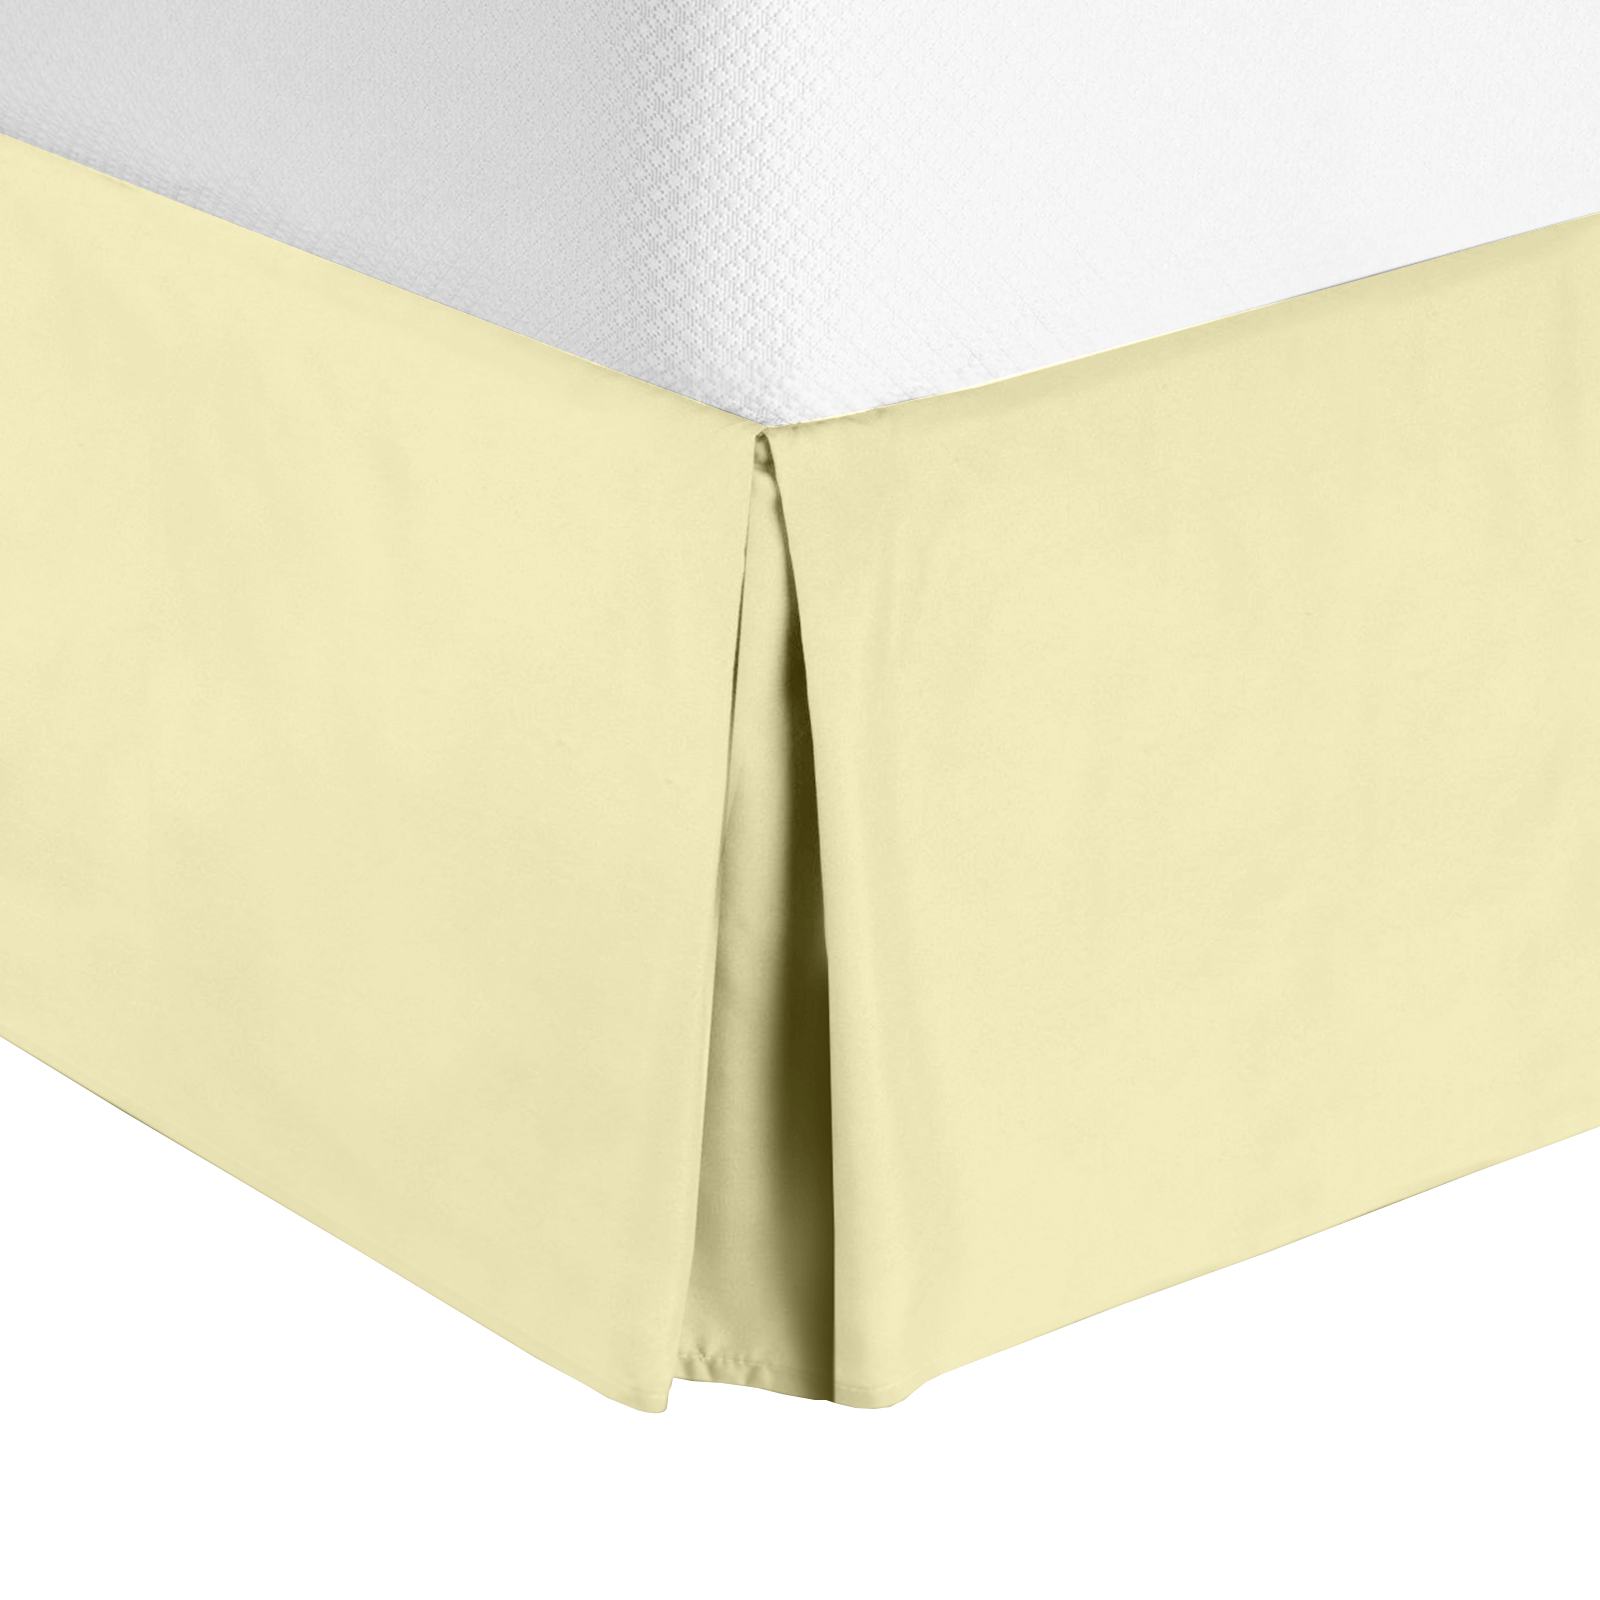 King Size Solid Ivory The Great American Store Premium Quality Pleated Bed Skirt//Dust Ruffle 10 Inch Tailored Drop 1800 Series Brushed Microfiber Bedskirt